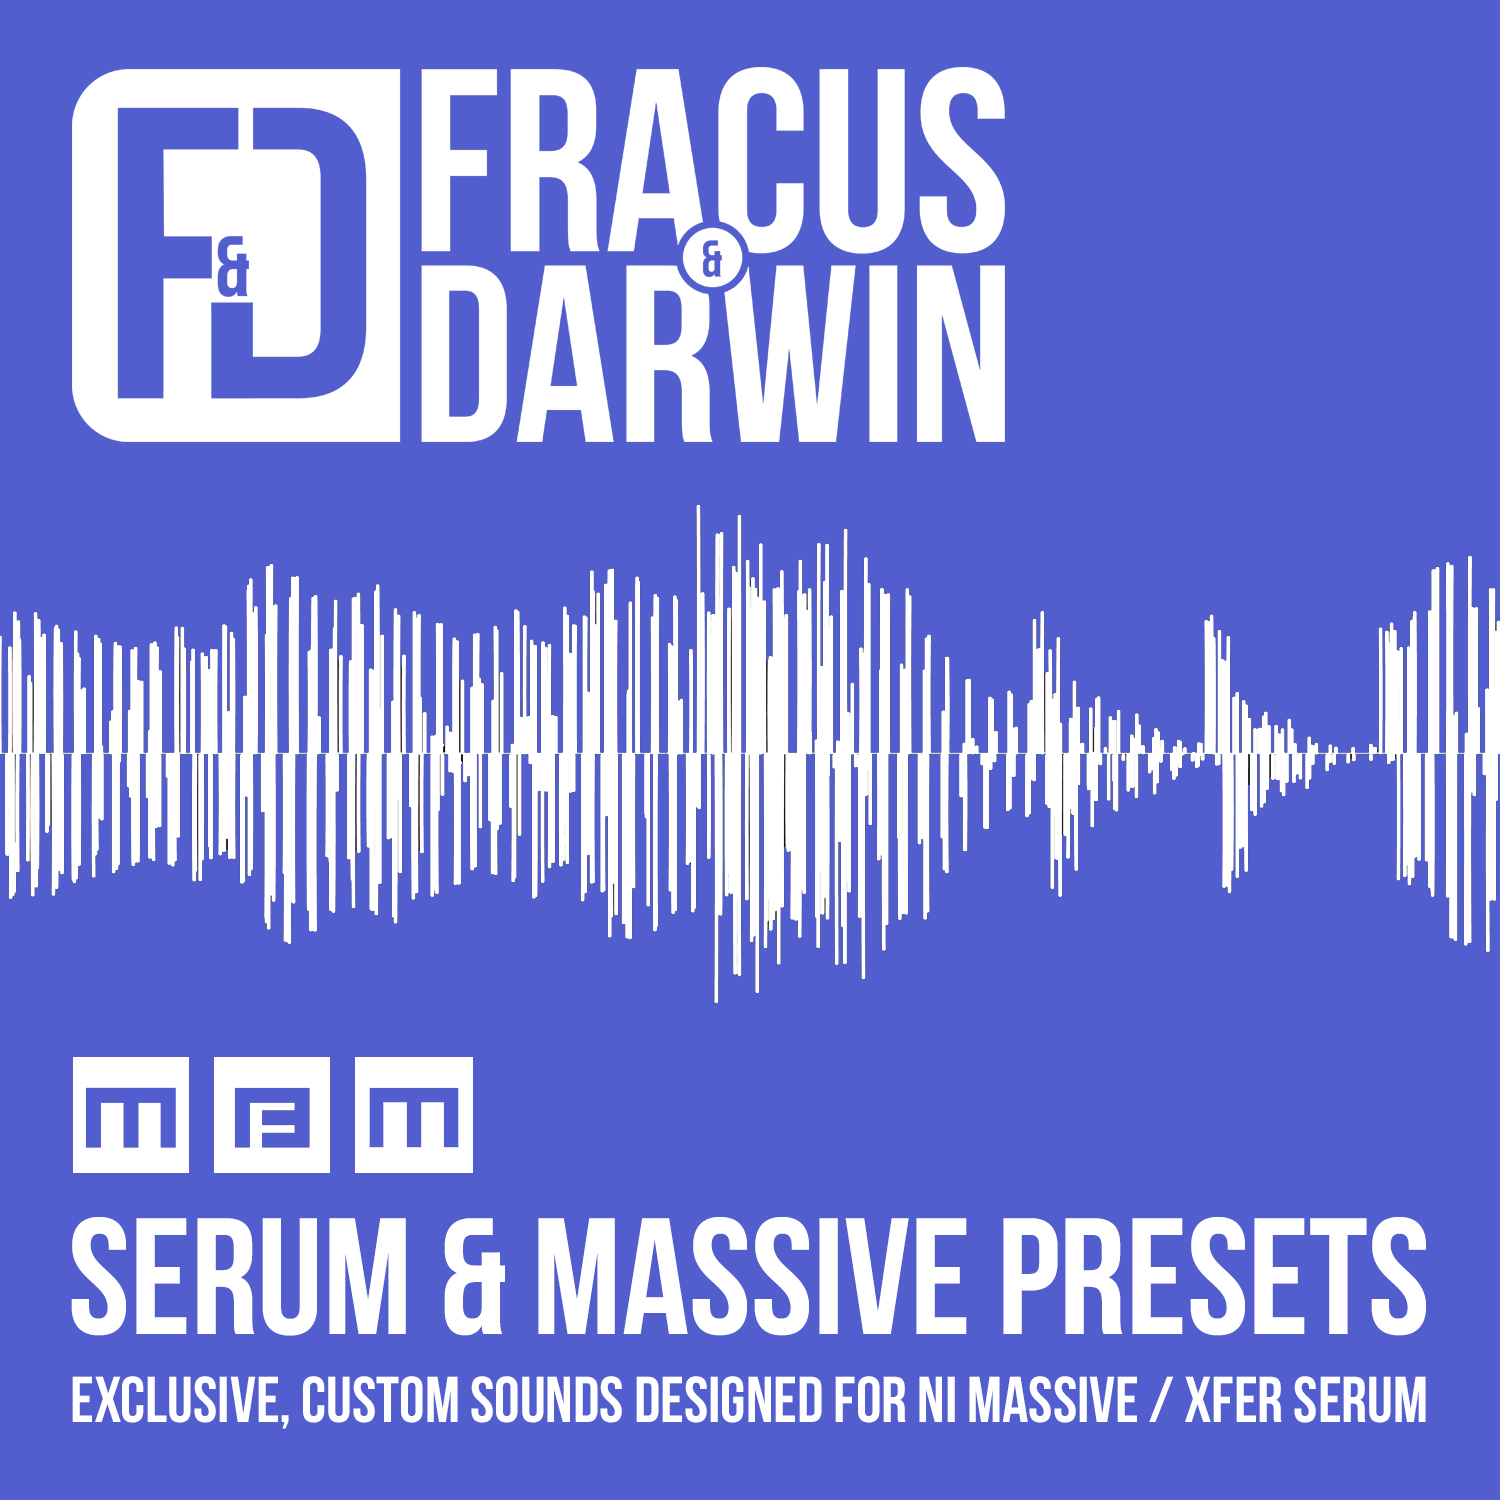 Fracus & Darwin Serum & Massive Presets - Music Blocks Media